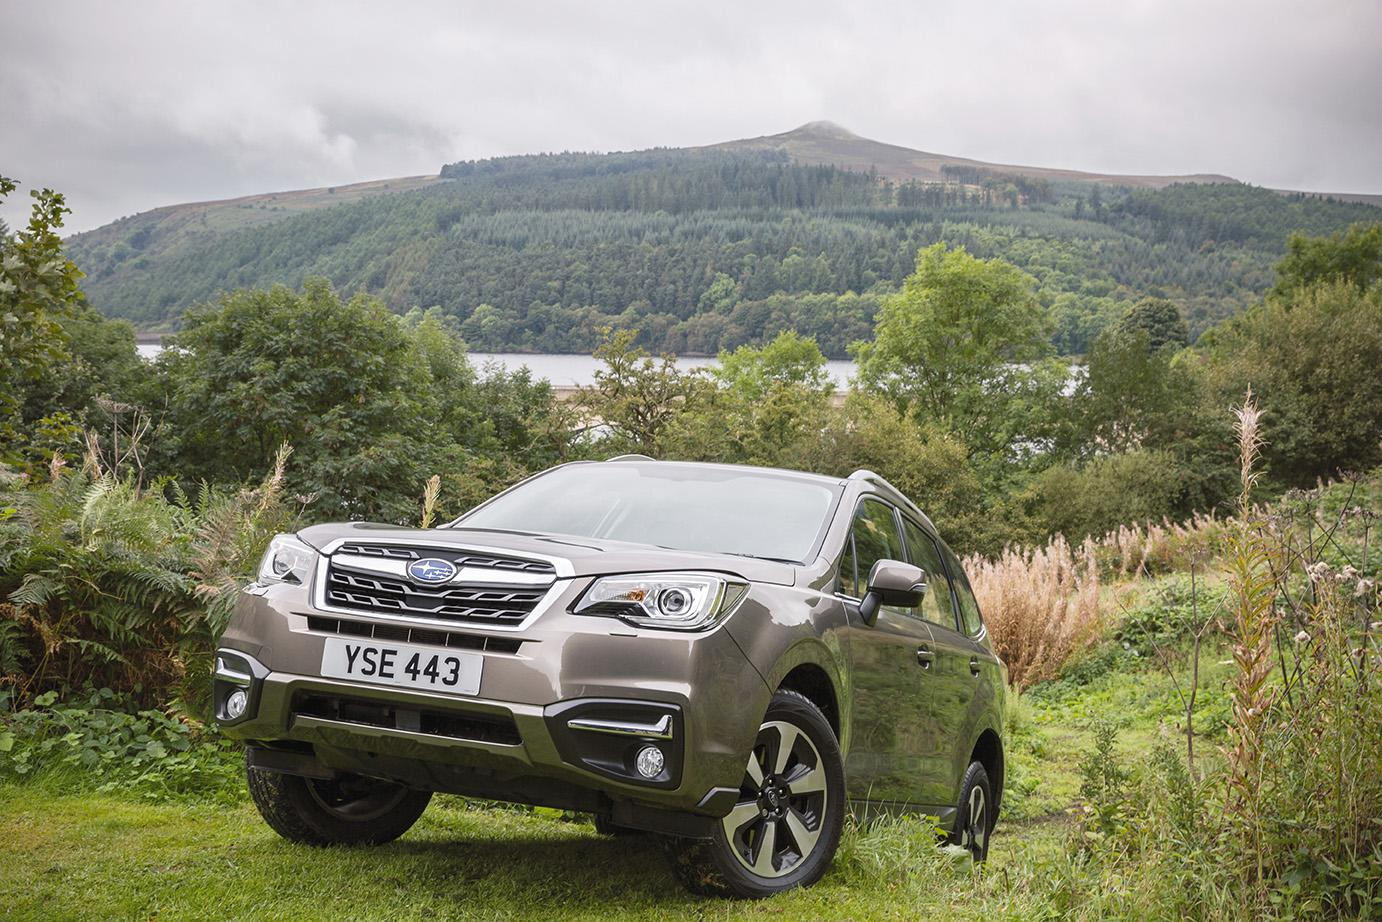 A clever all-wheel-drive system gives the Outback huge traction